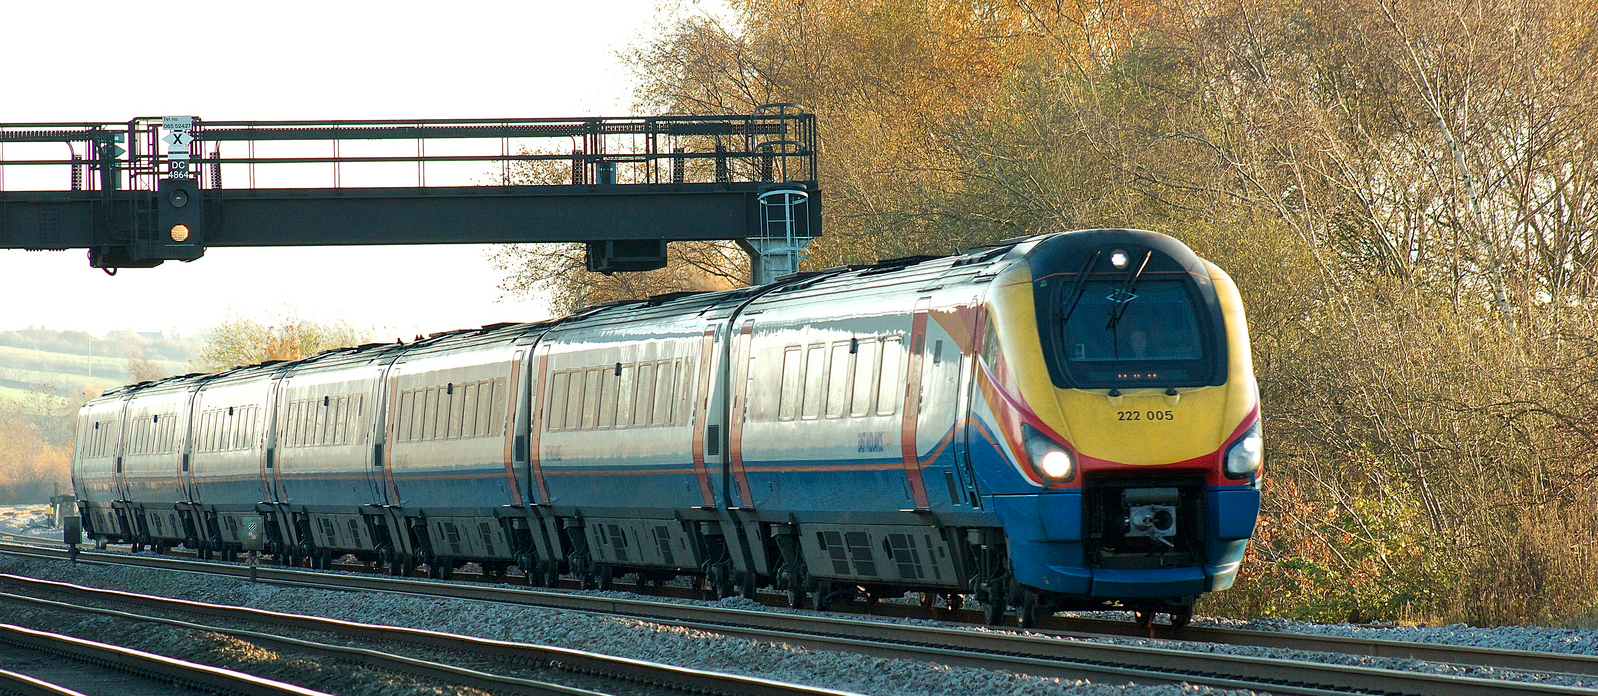 Midland Mainline hits 125mph